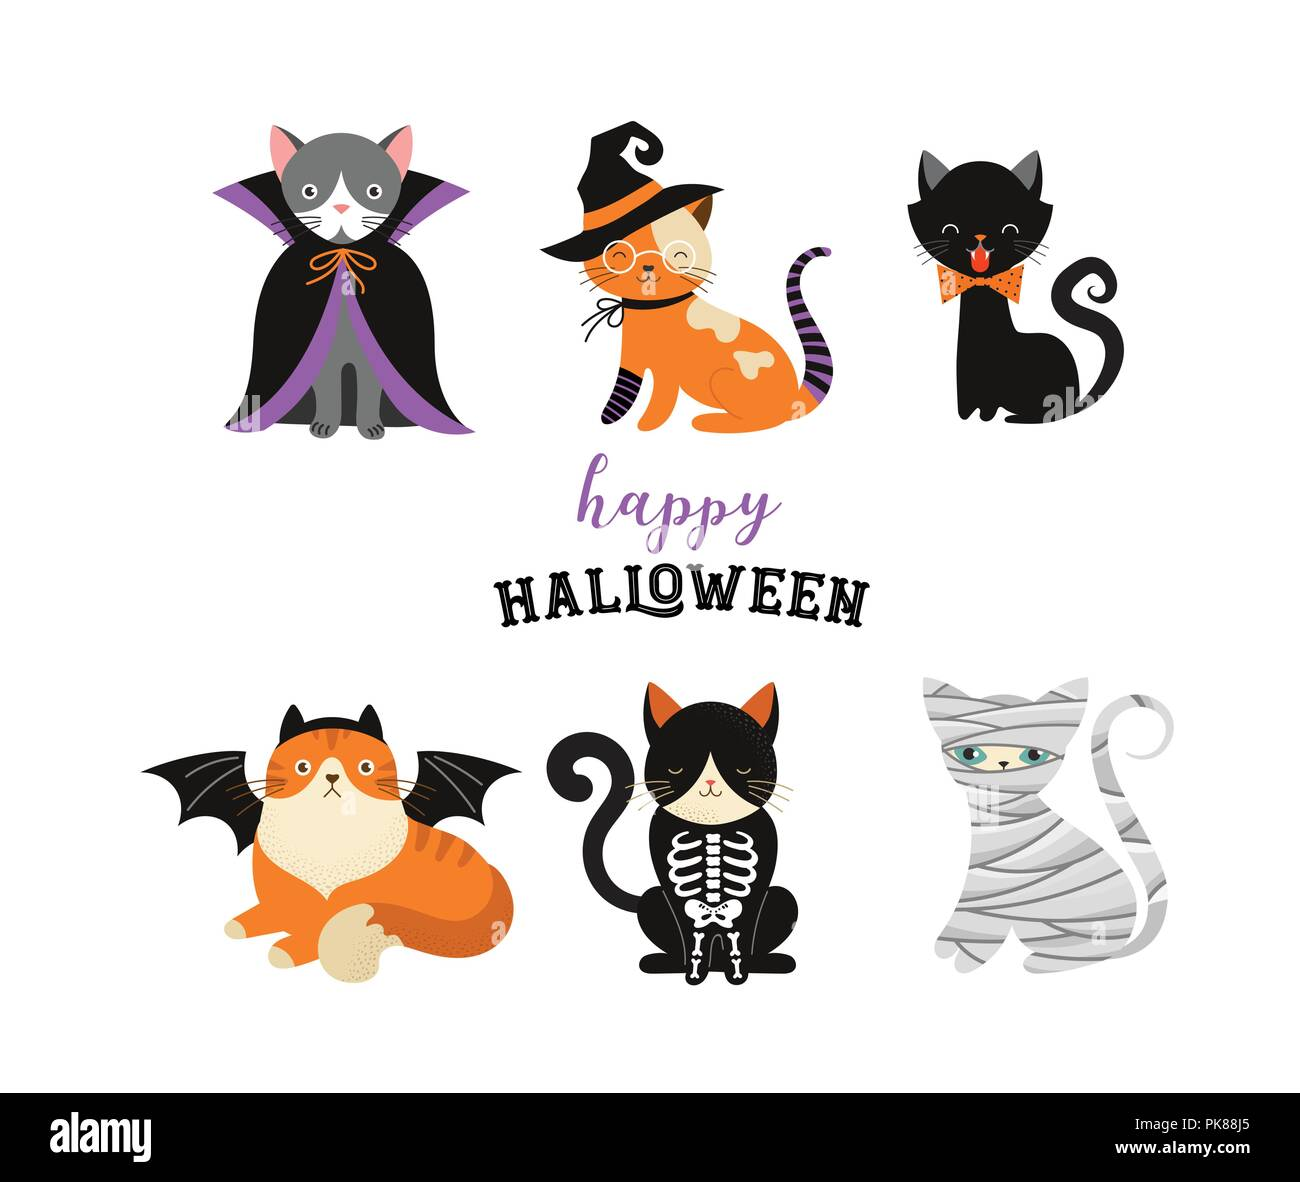 halloween cats costume party. illustration and vector elements of